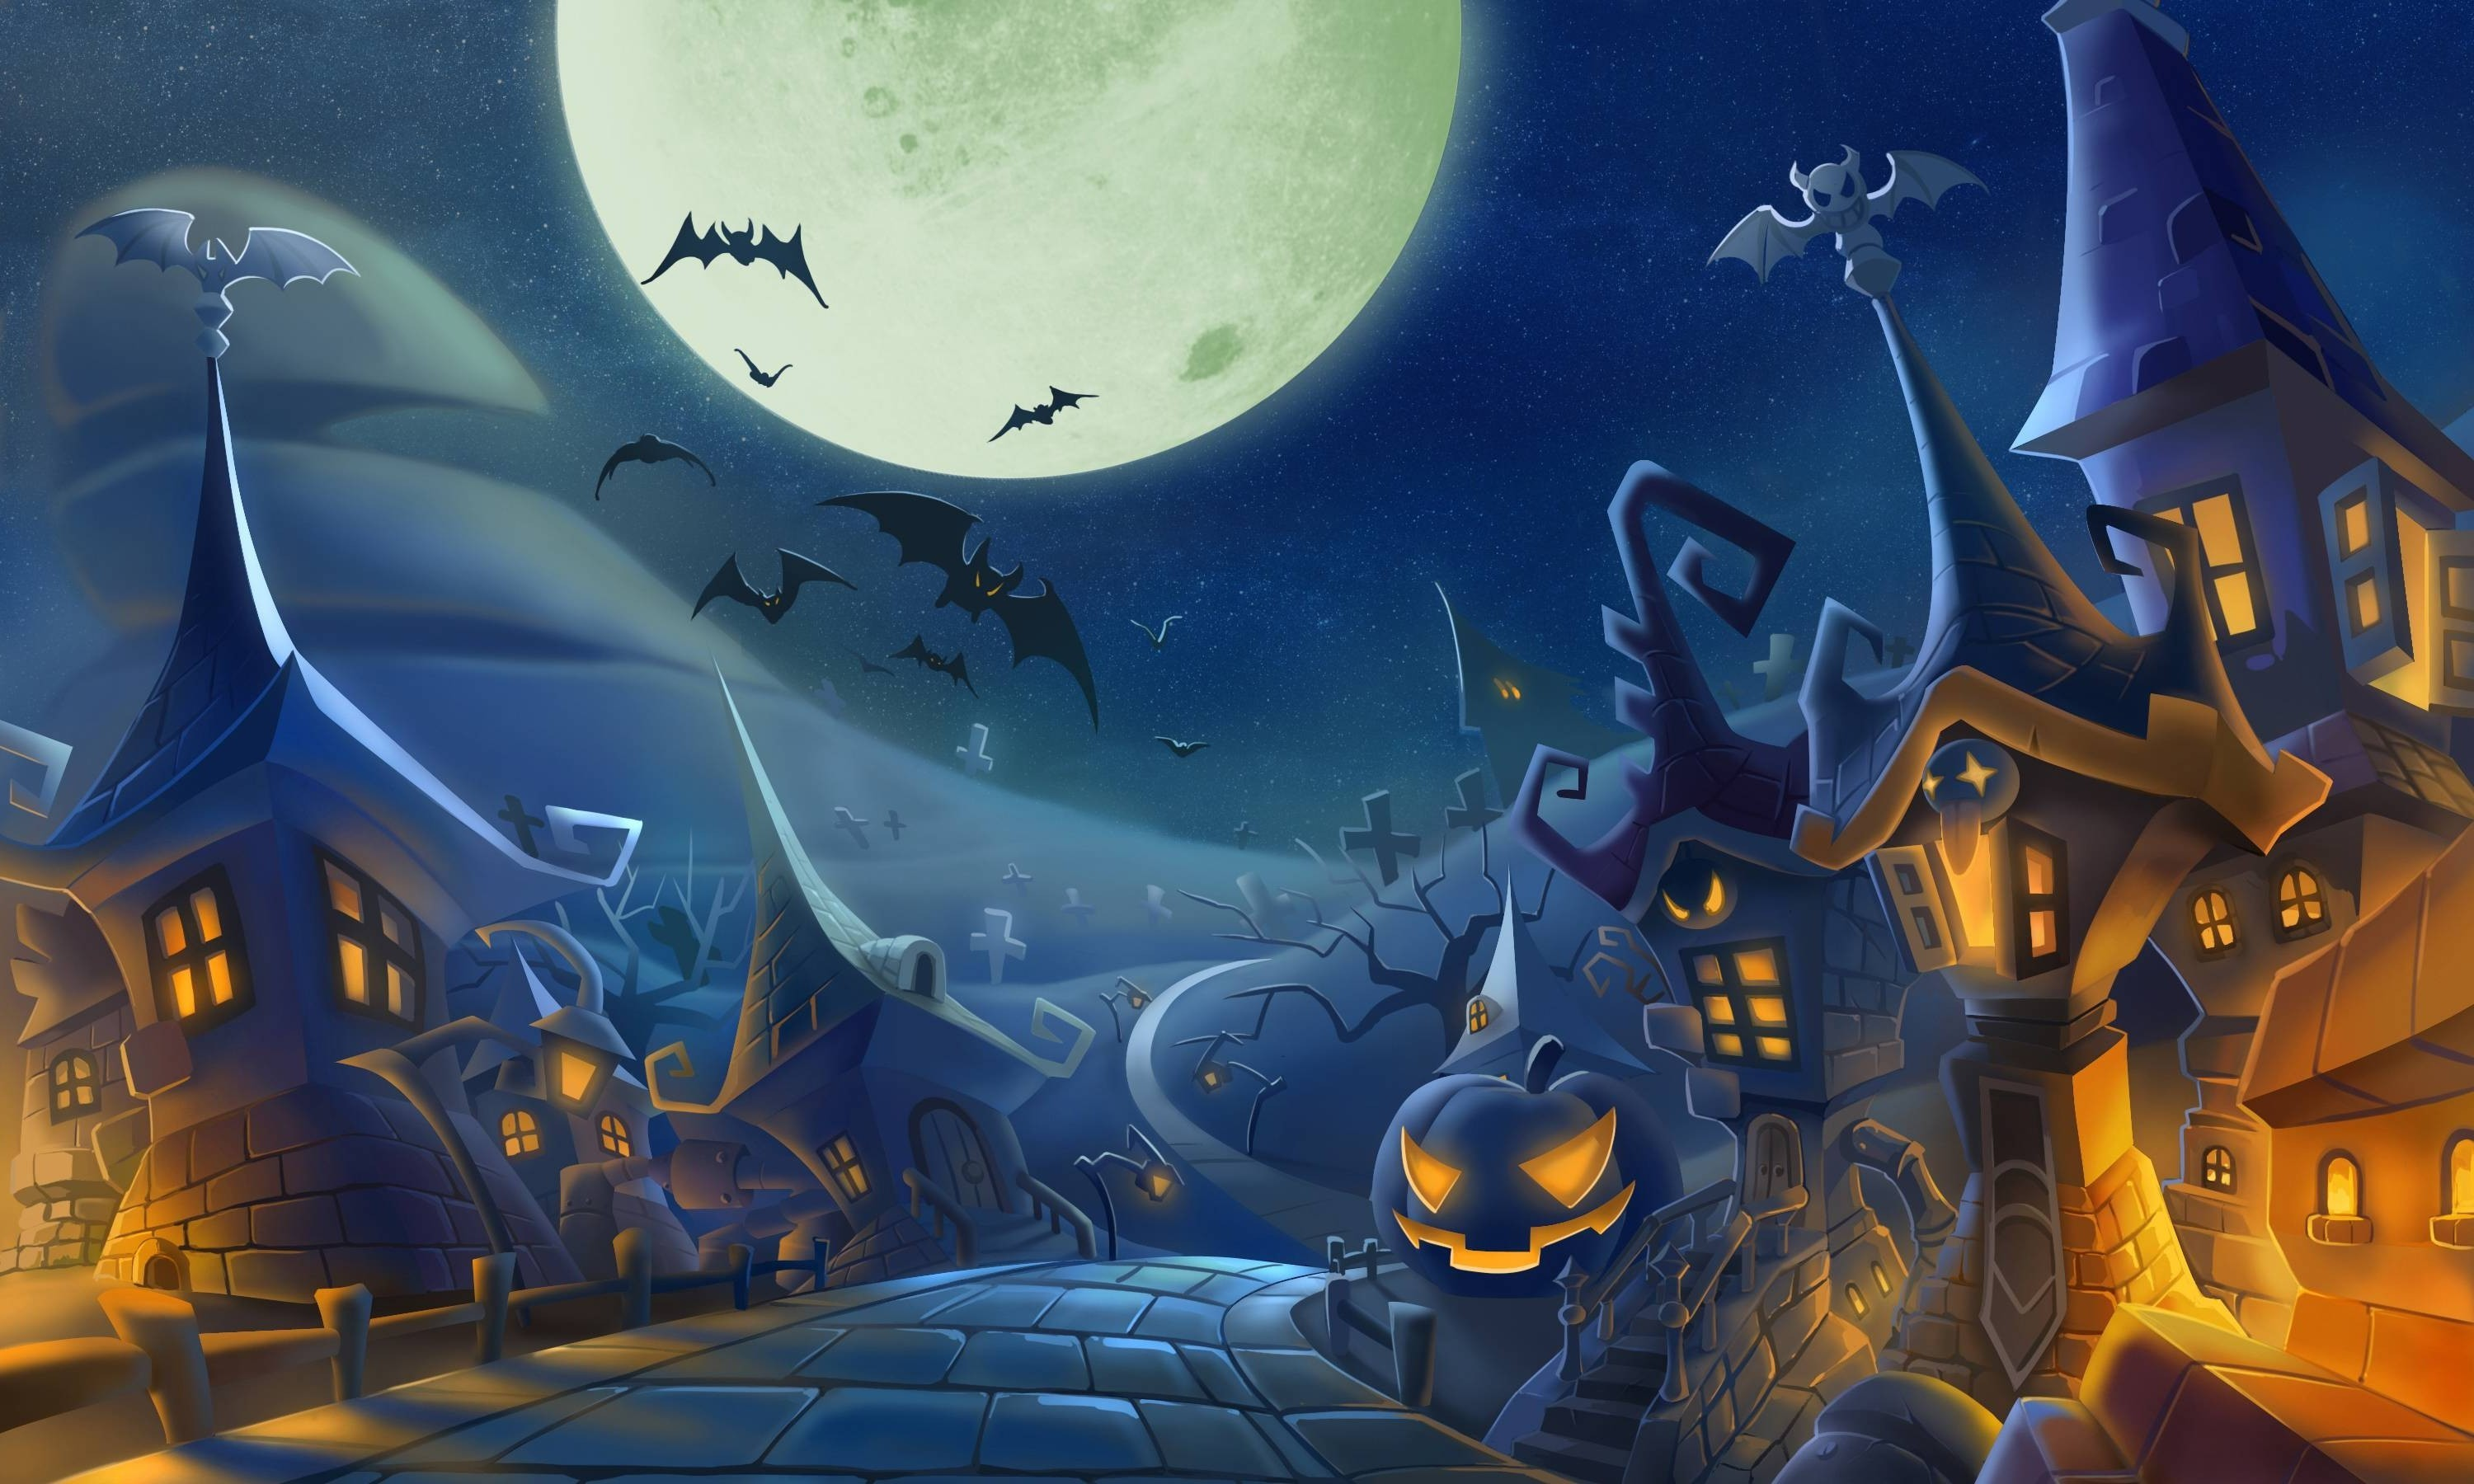 spooky halloween backgrounds (55+ images)